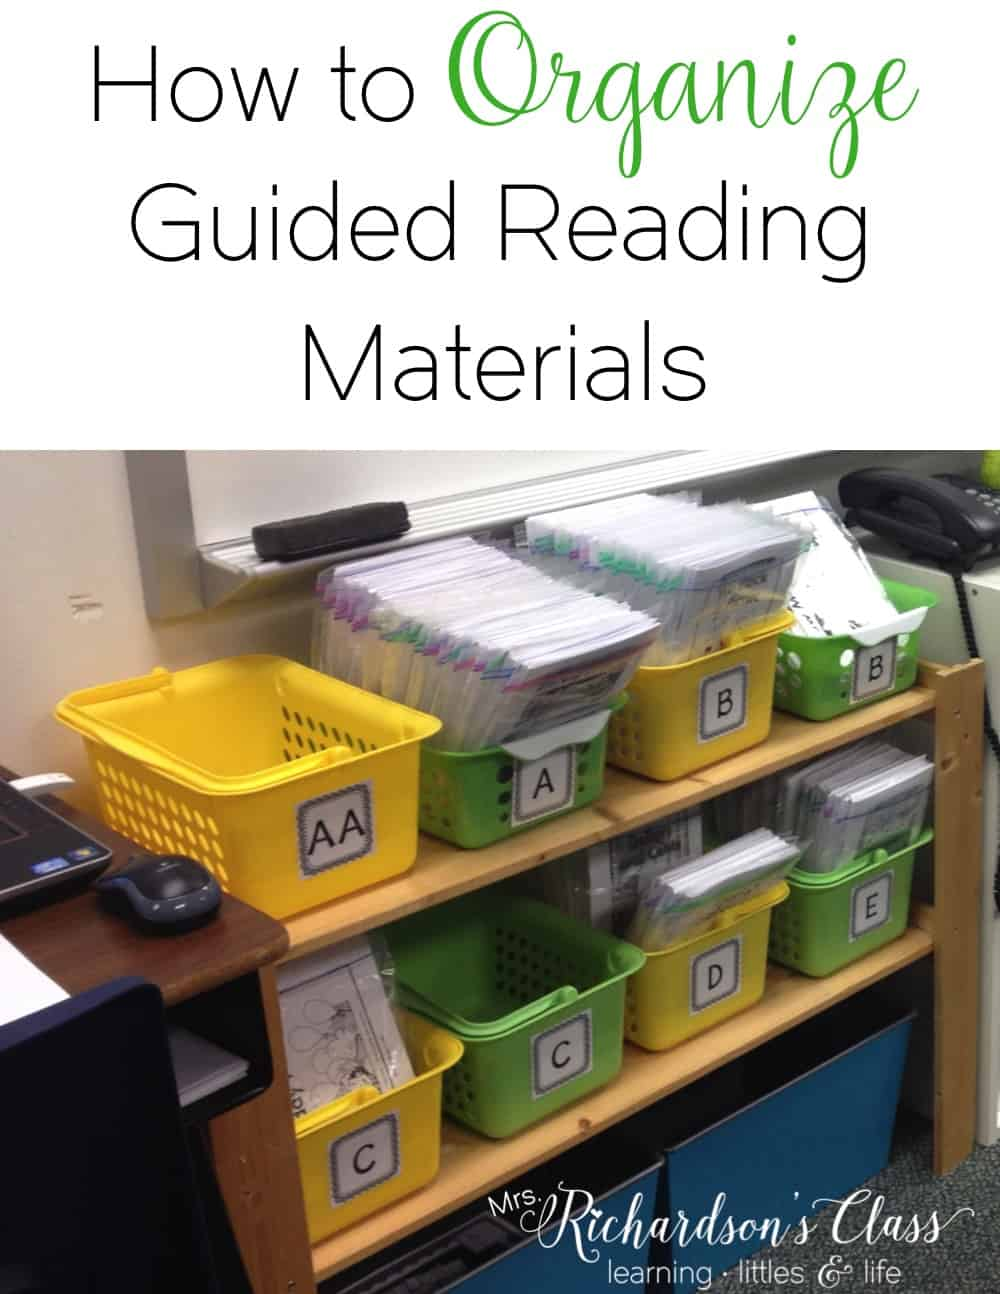 Organizing your guided reading materials can be overwhelming. Come see how this teacher keeps it all together and organized in her classroom! Don't forget to grab the FREEBIES! #GuidedReading #ClassroomOrganization